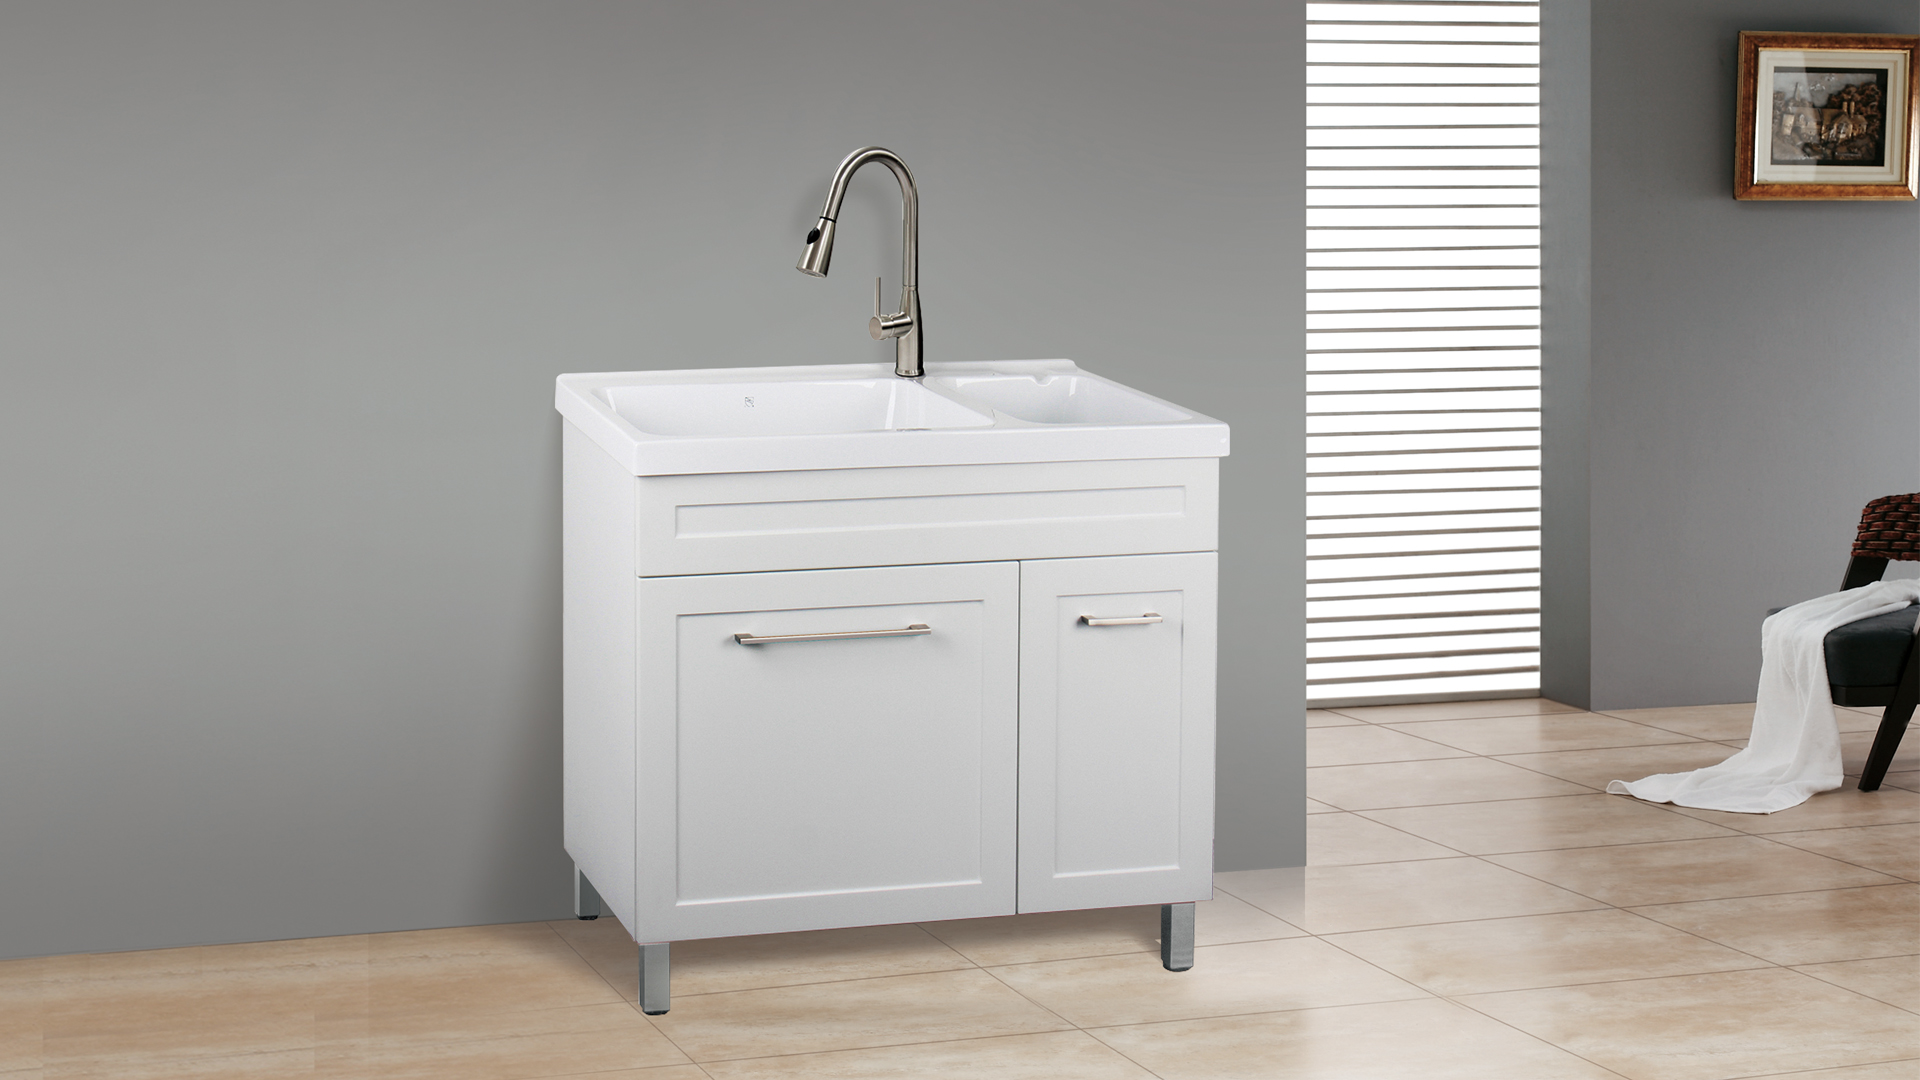 Dolphin Homeware Laundry Cabinets